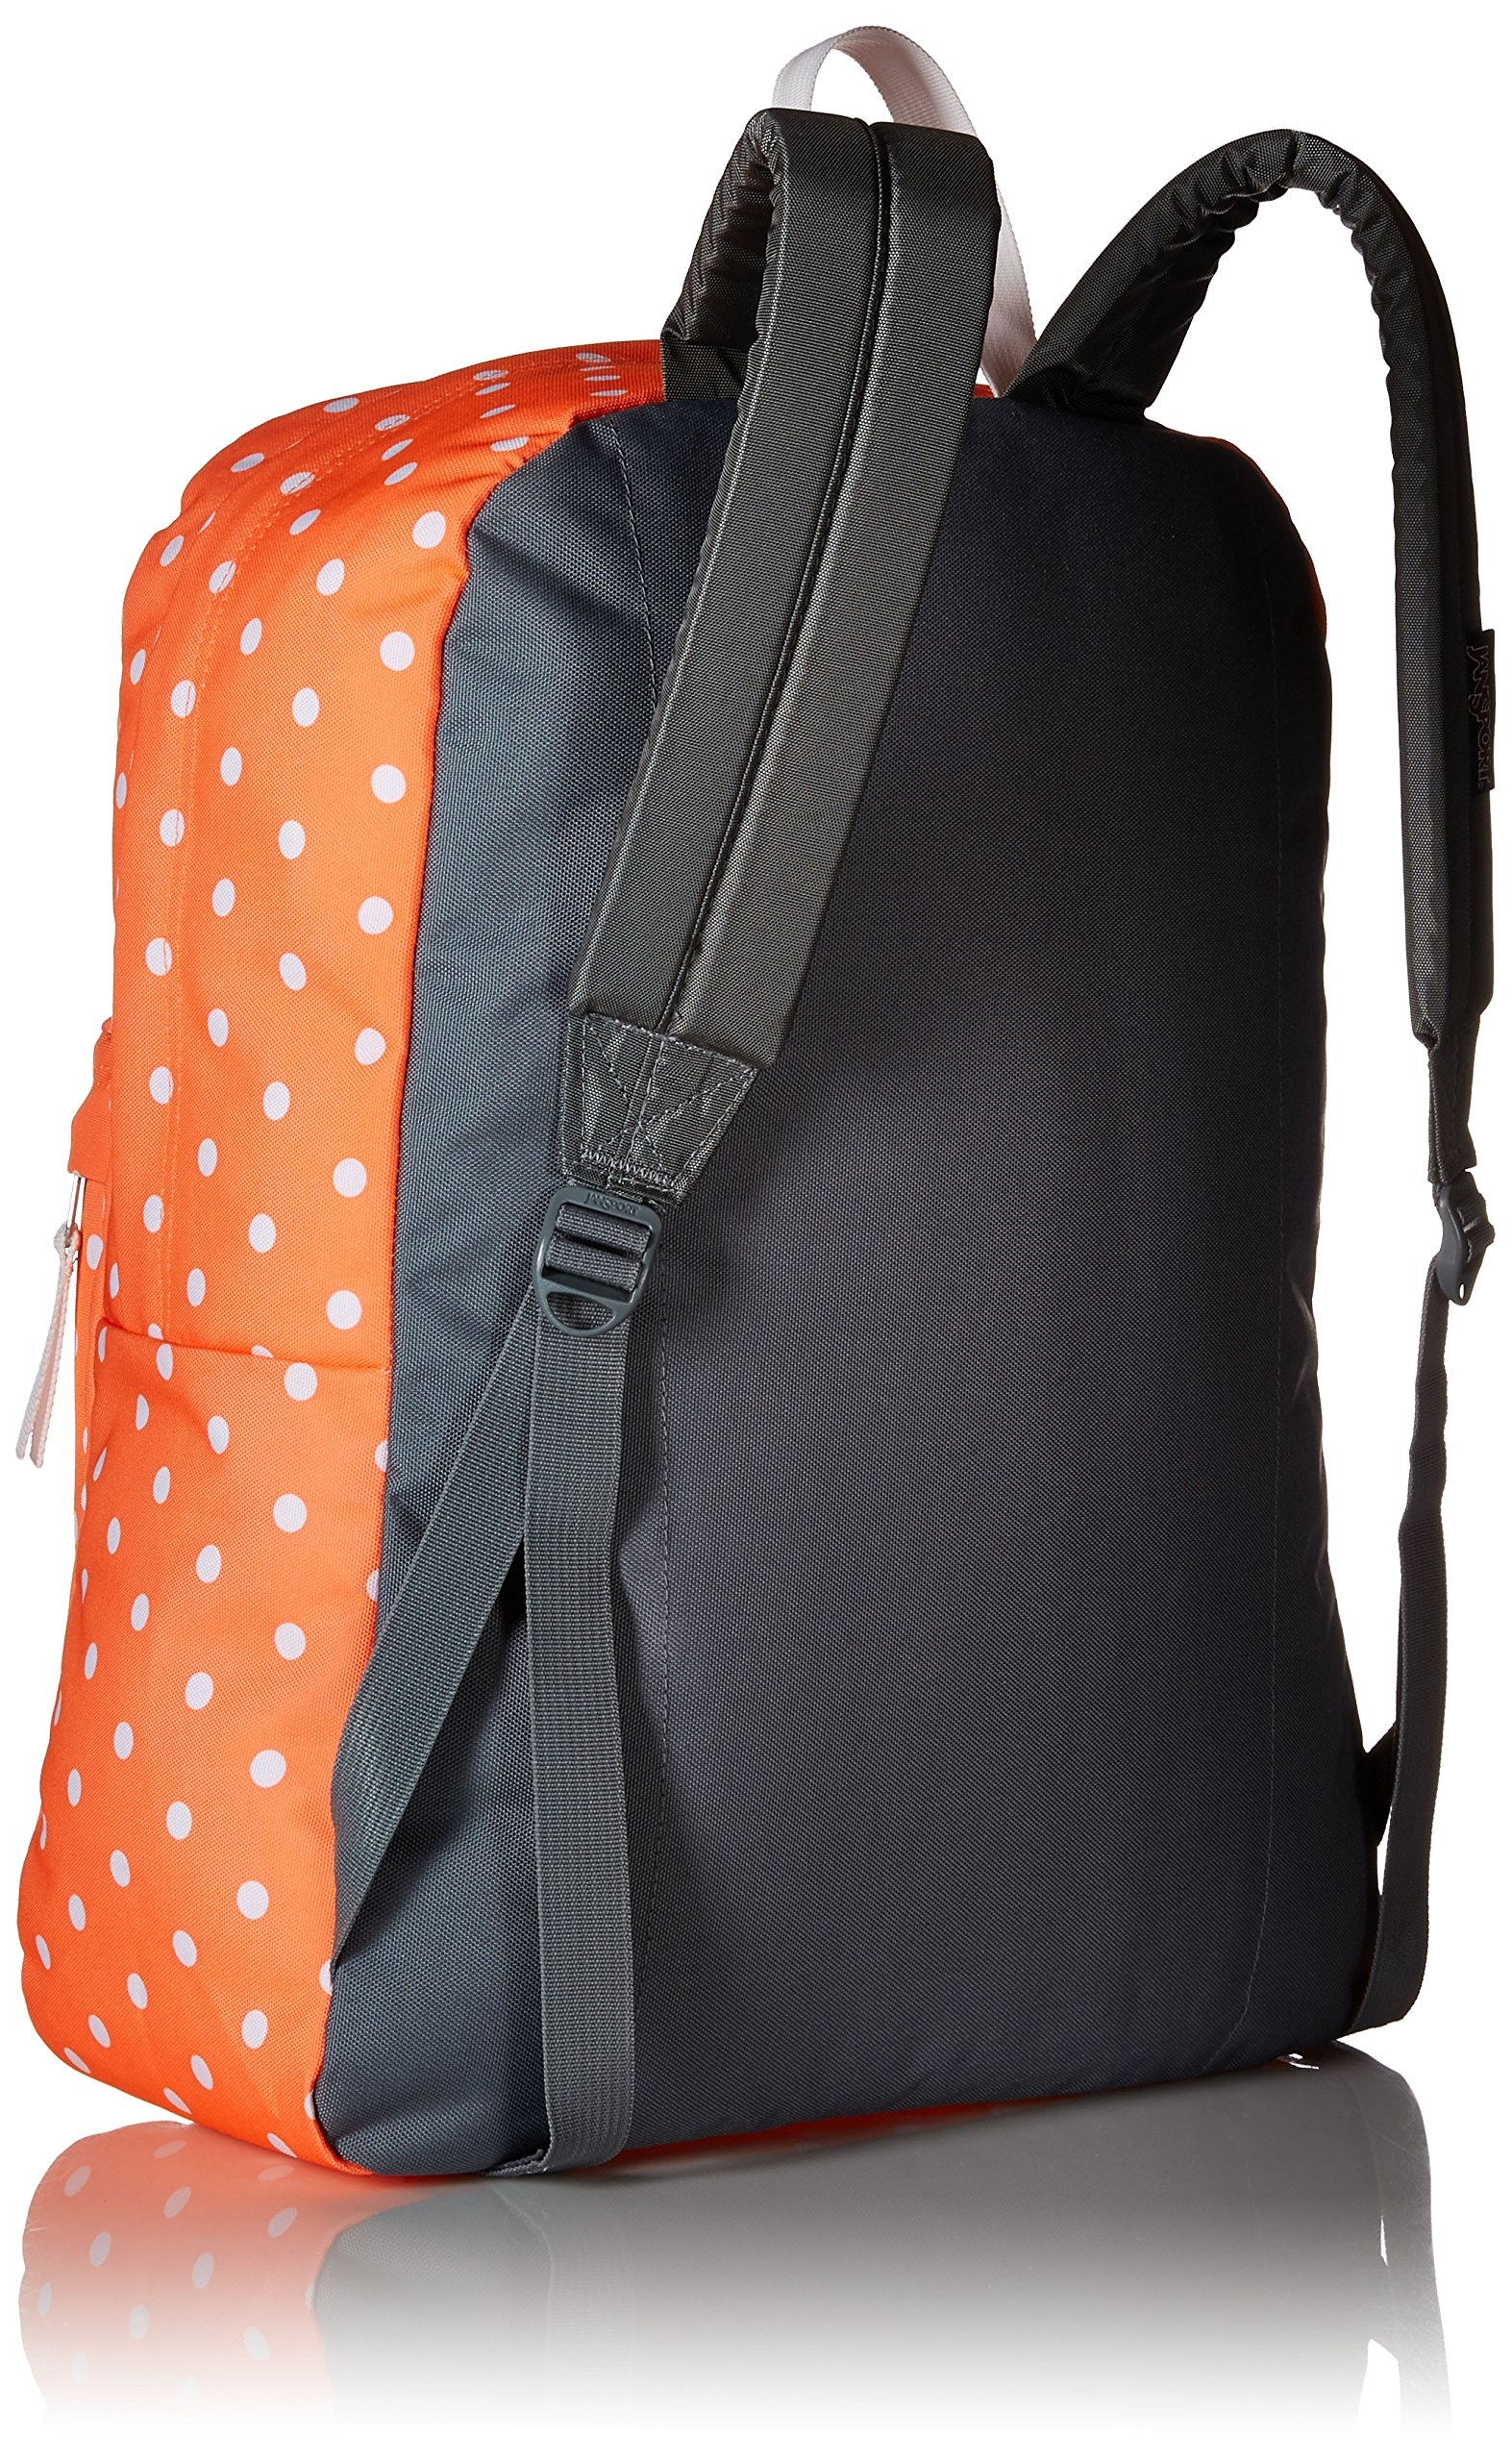 JanSport Superbreak, Tahitian Orange/White Dots, One Size by JanSport (Image #2)